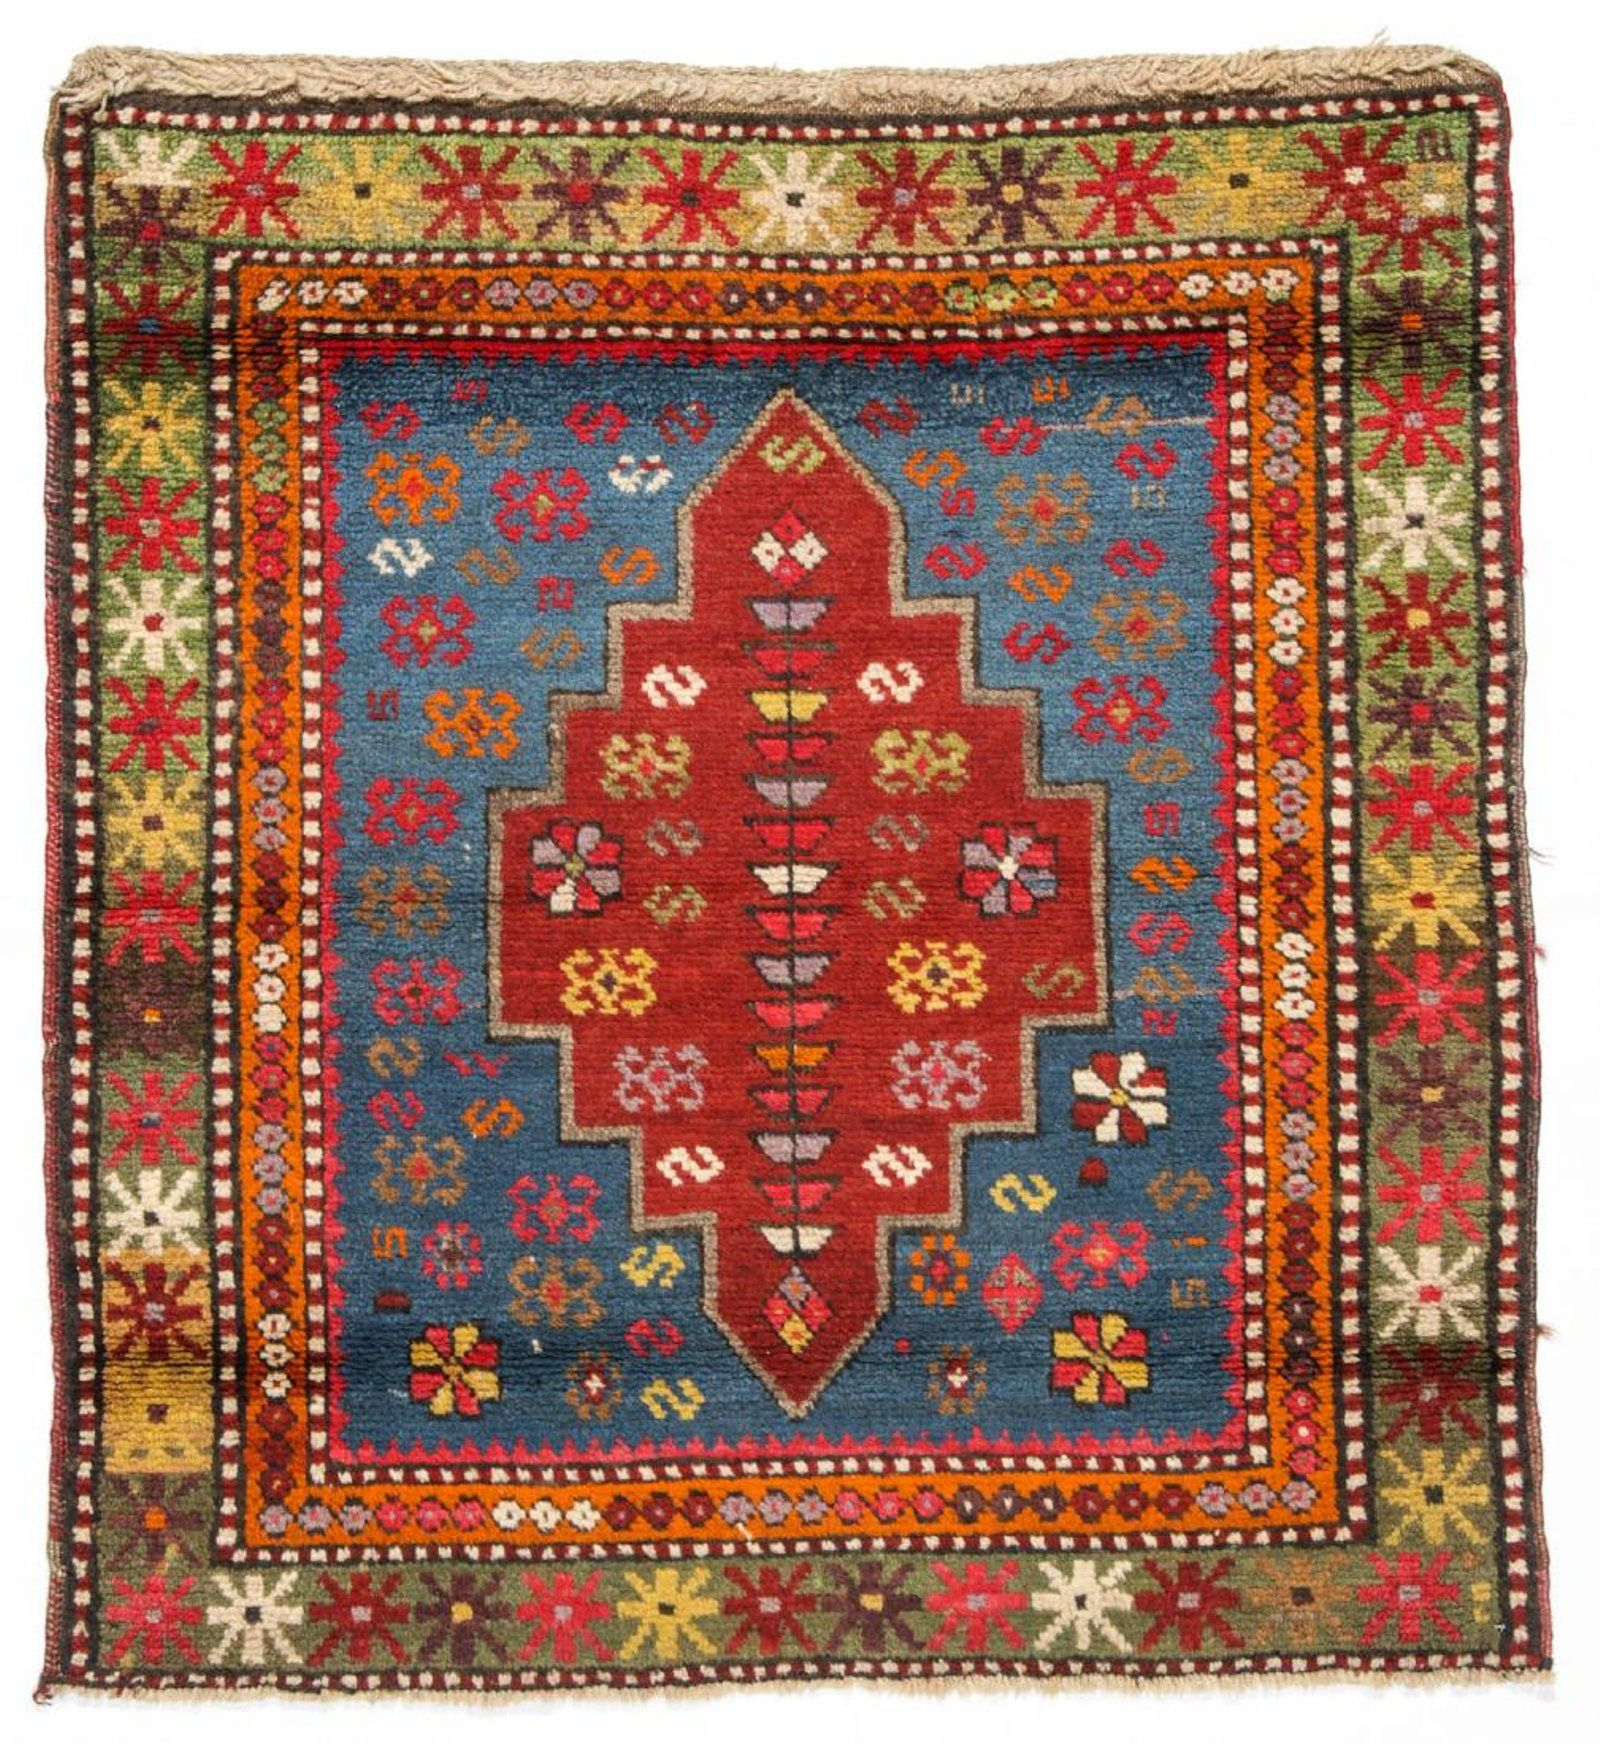 Antique Kazak Rug 2 11 X 3 2